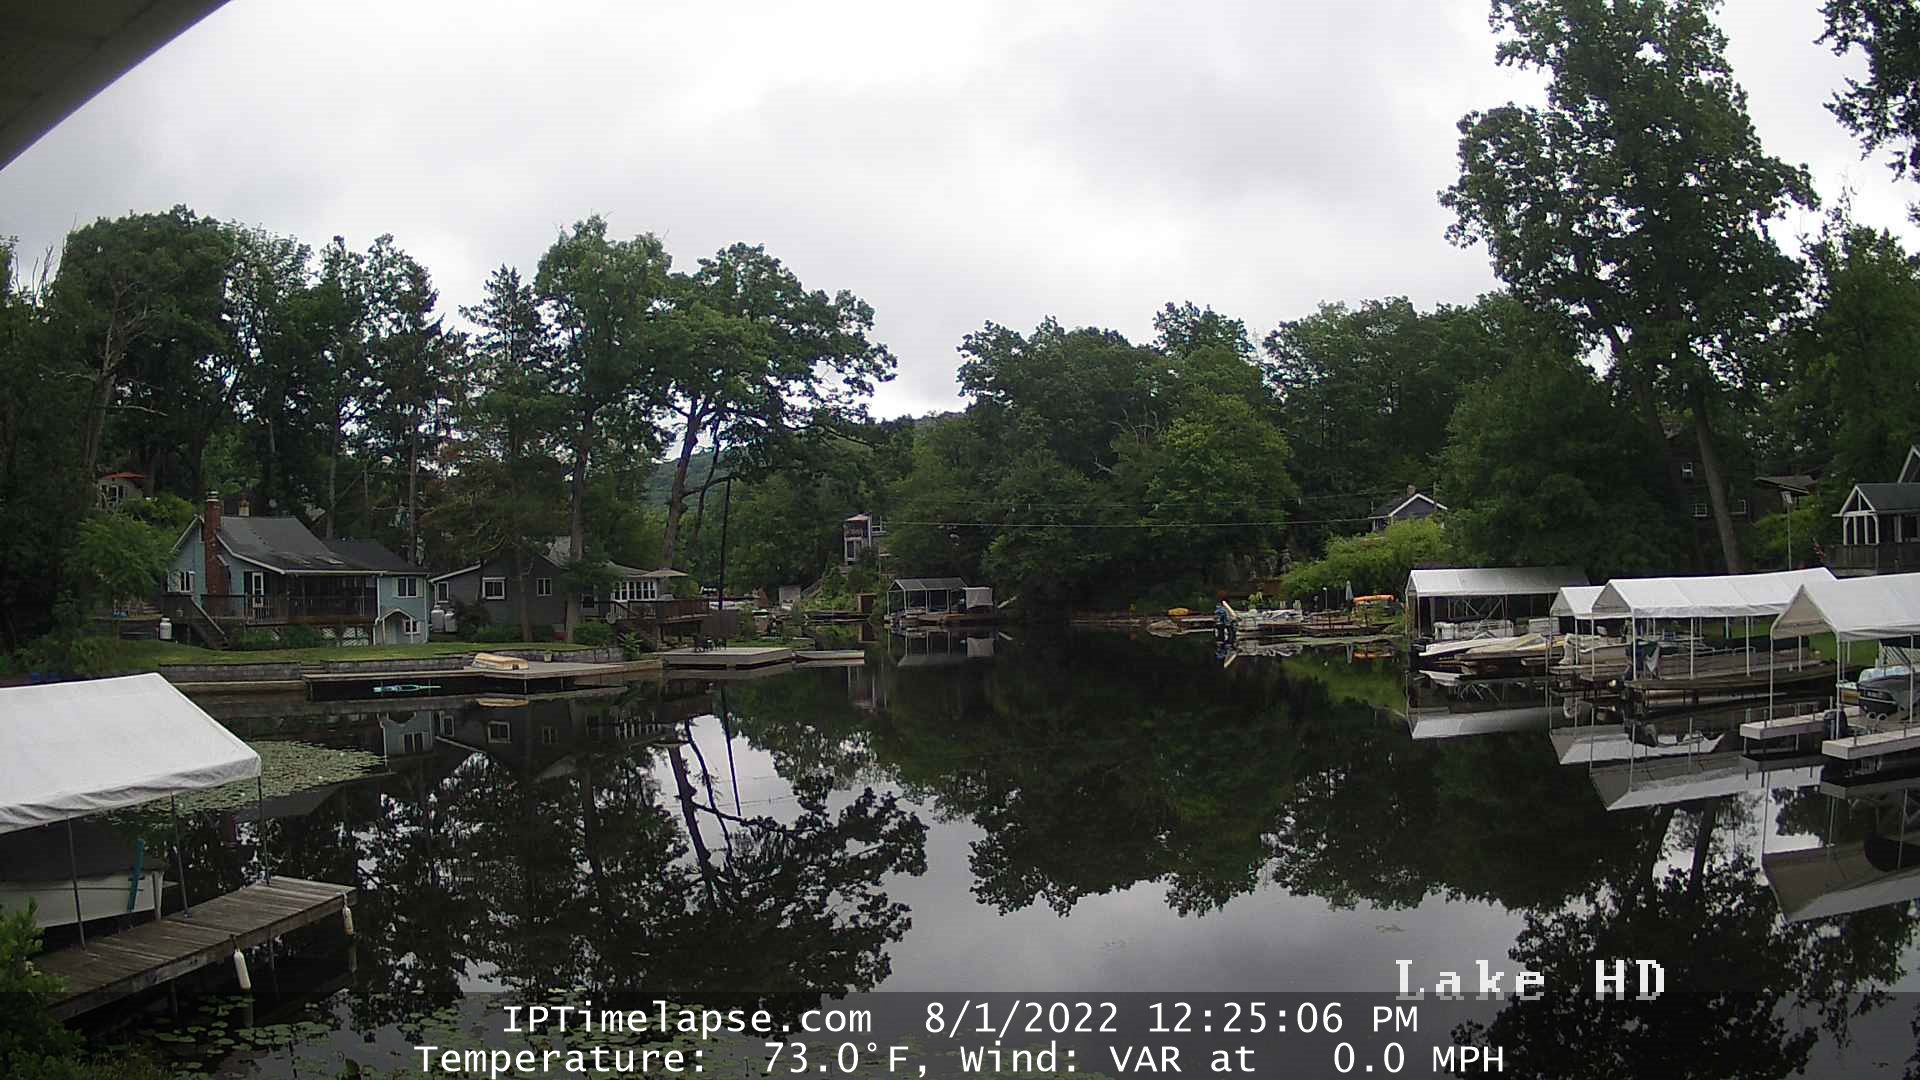 Webcam Cranberry Lake - New Jersey&nbsp;Live webcamera